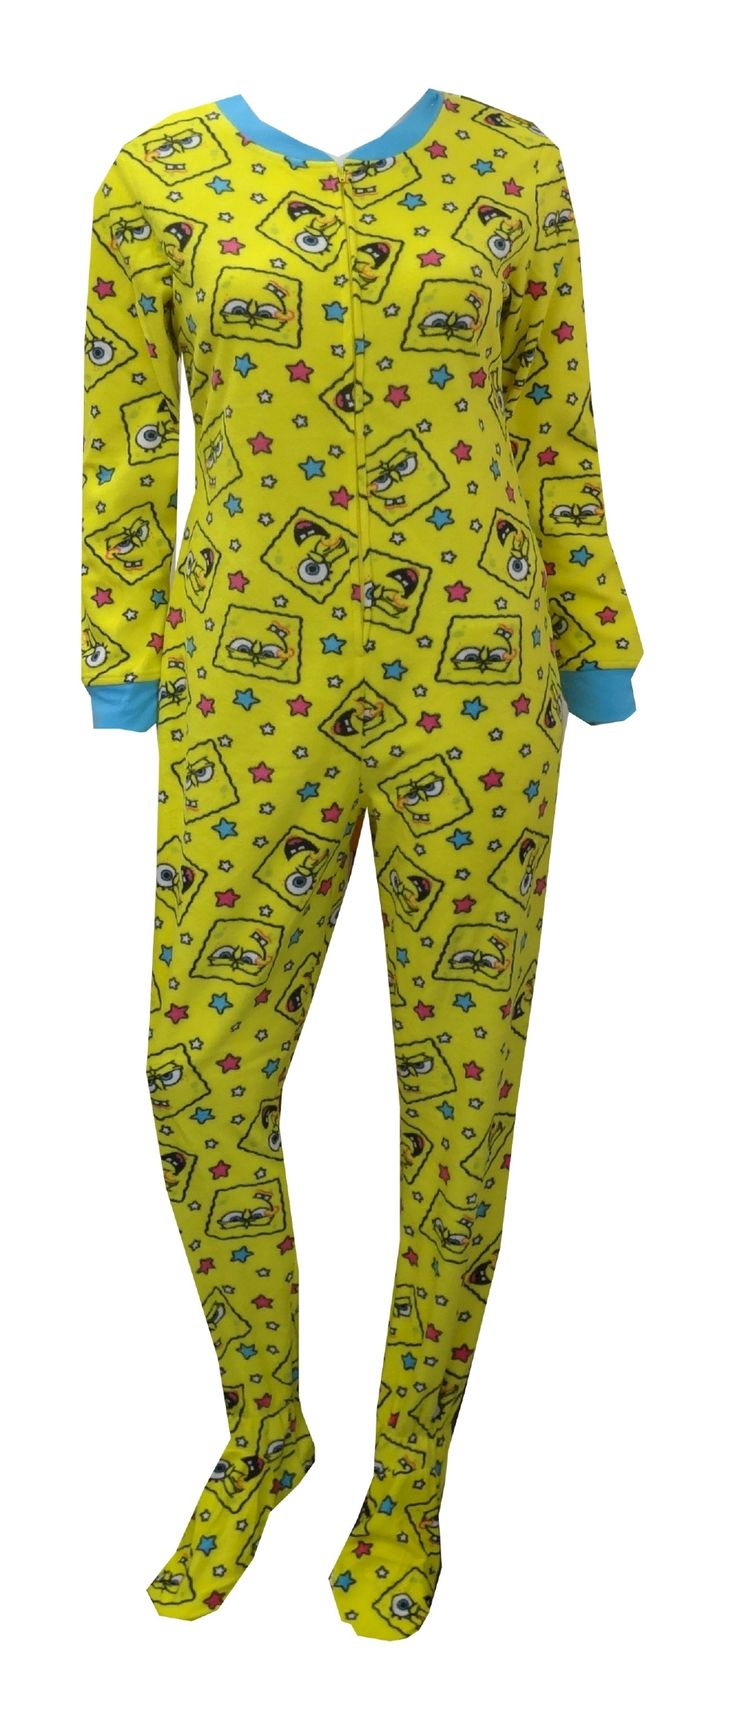 SpongeBob Faces Yellow Onesie Footie Pajama This popular favorite is back! These pajamas for women feature the many faces of Sp...